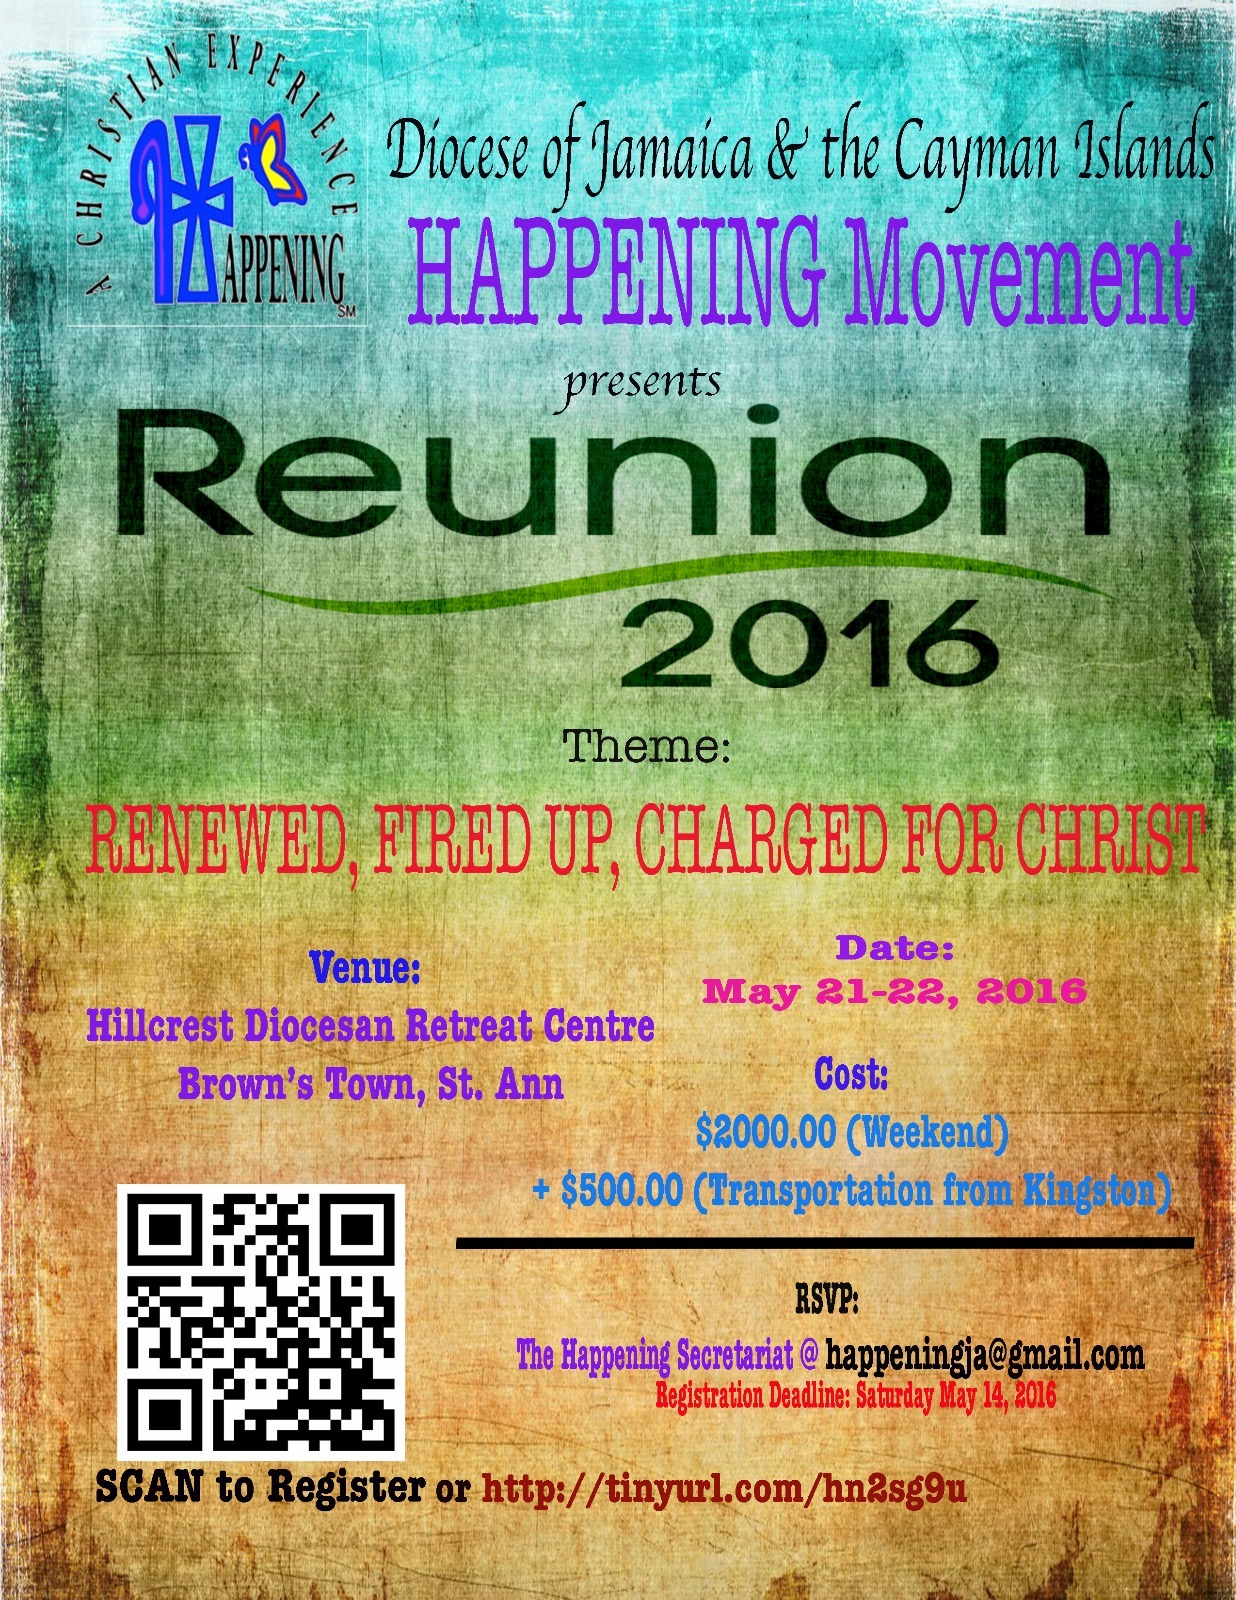 Happening Movement Reunion 2016 Flyer